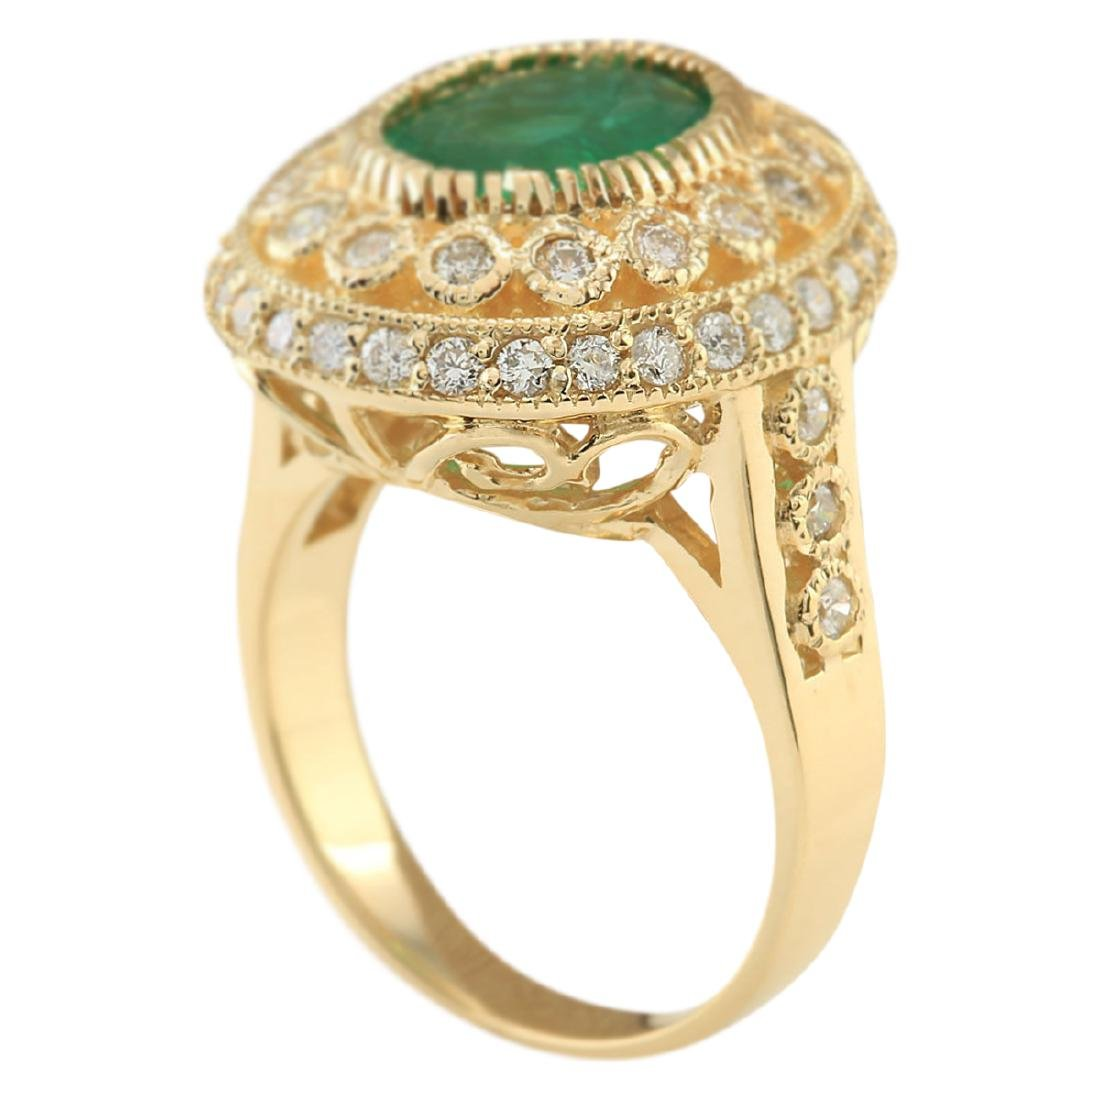 3.45 CTW Natural Emerald And Diamond Ring In 18K Yellow - 3